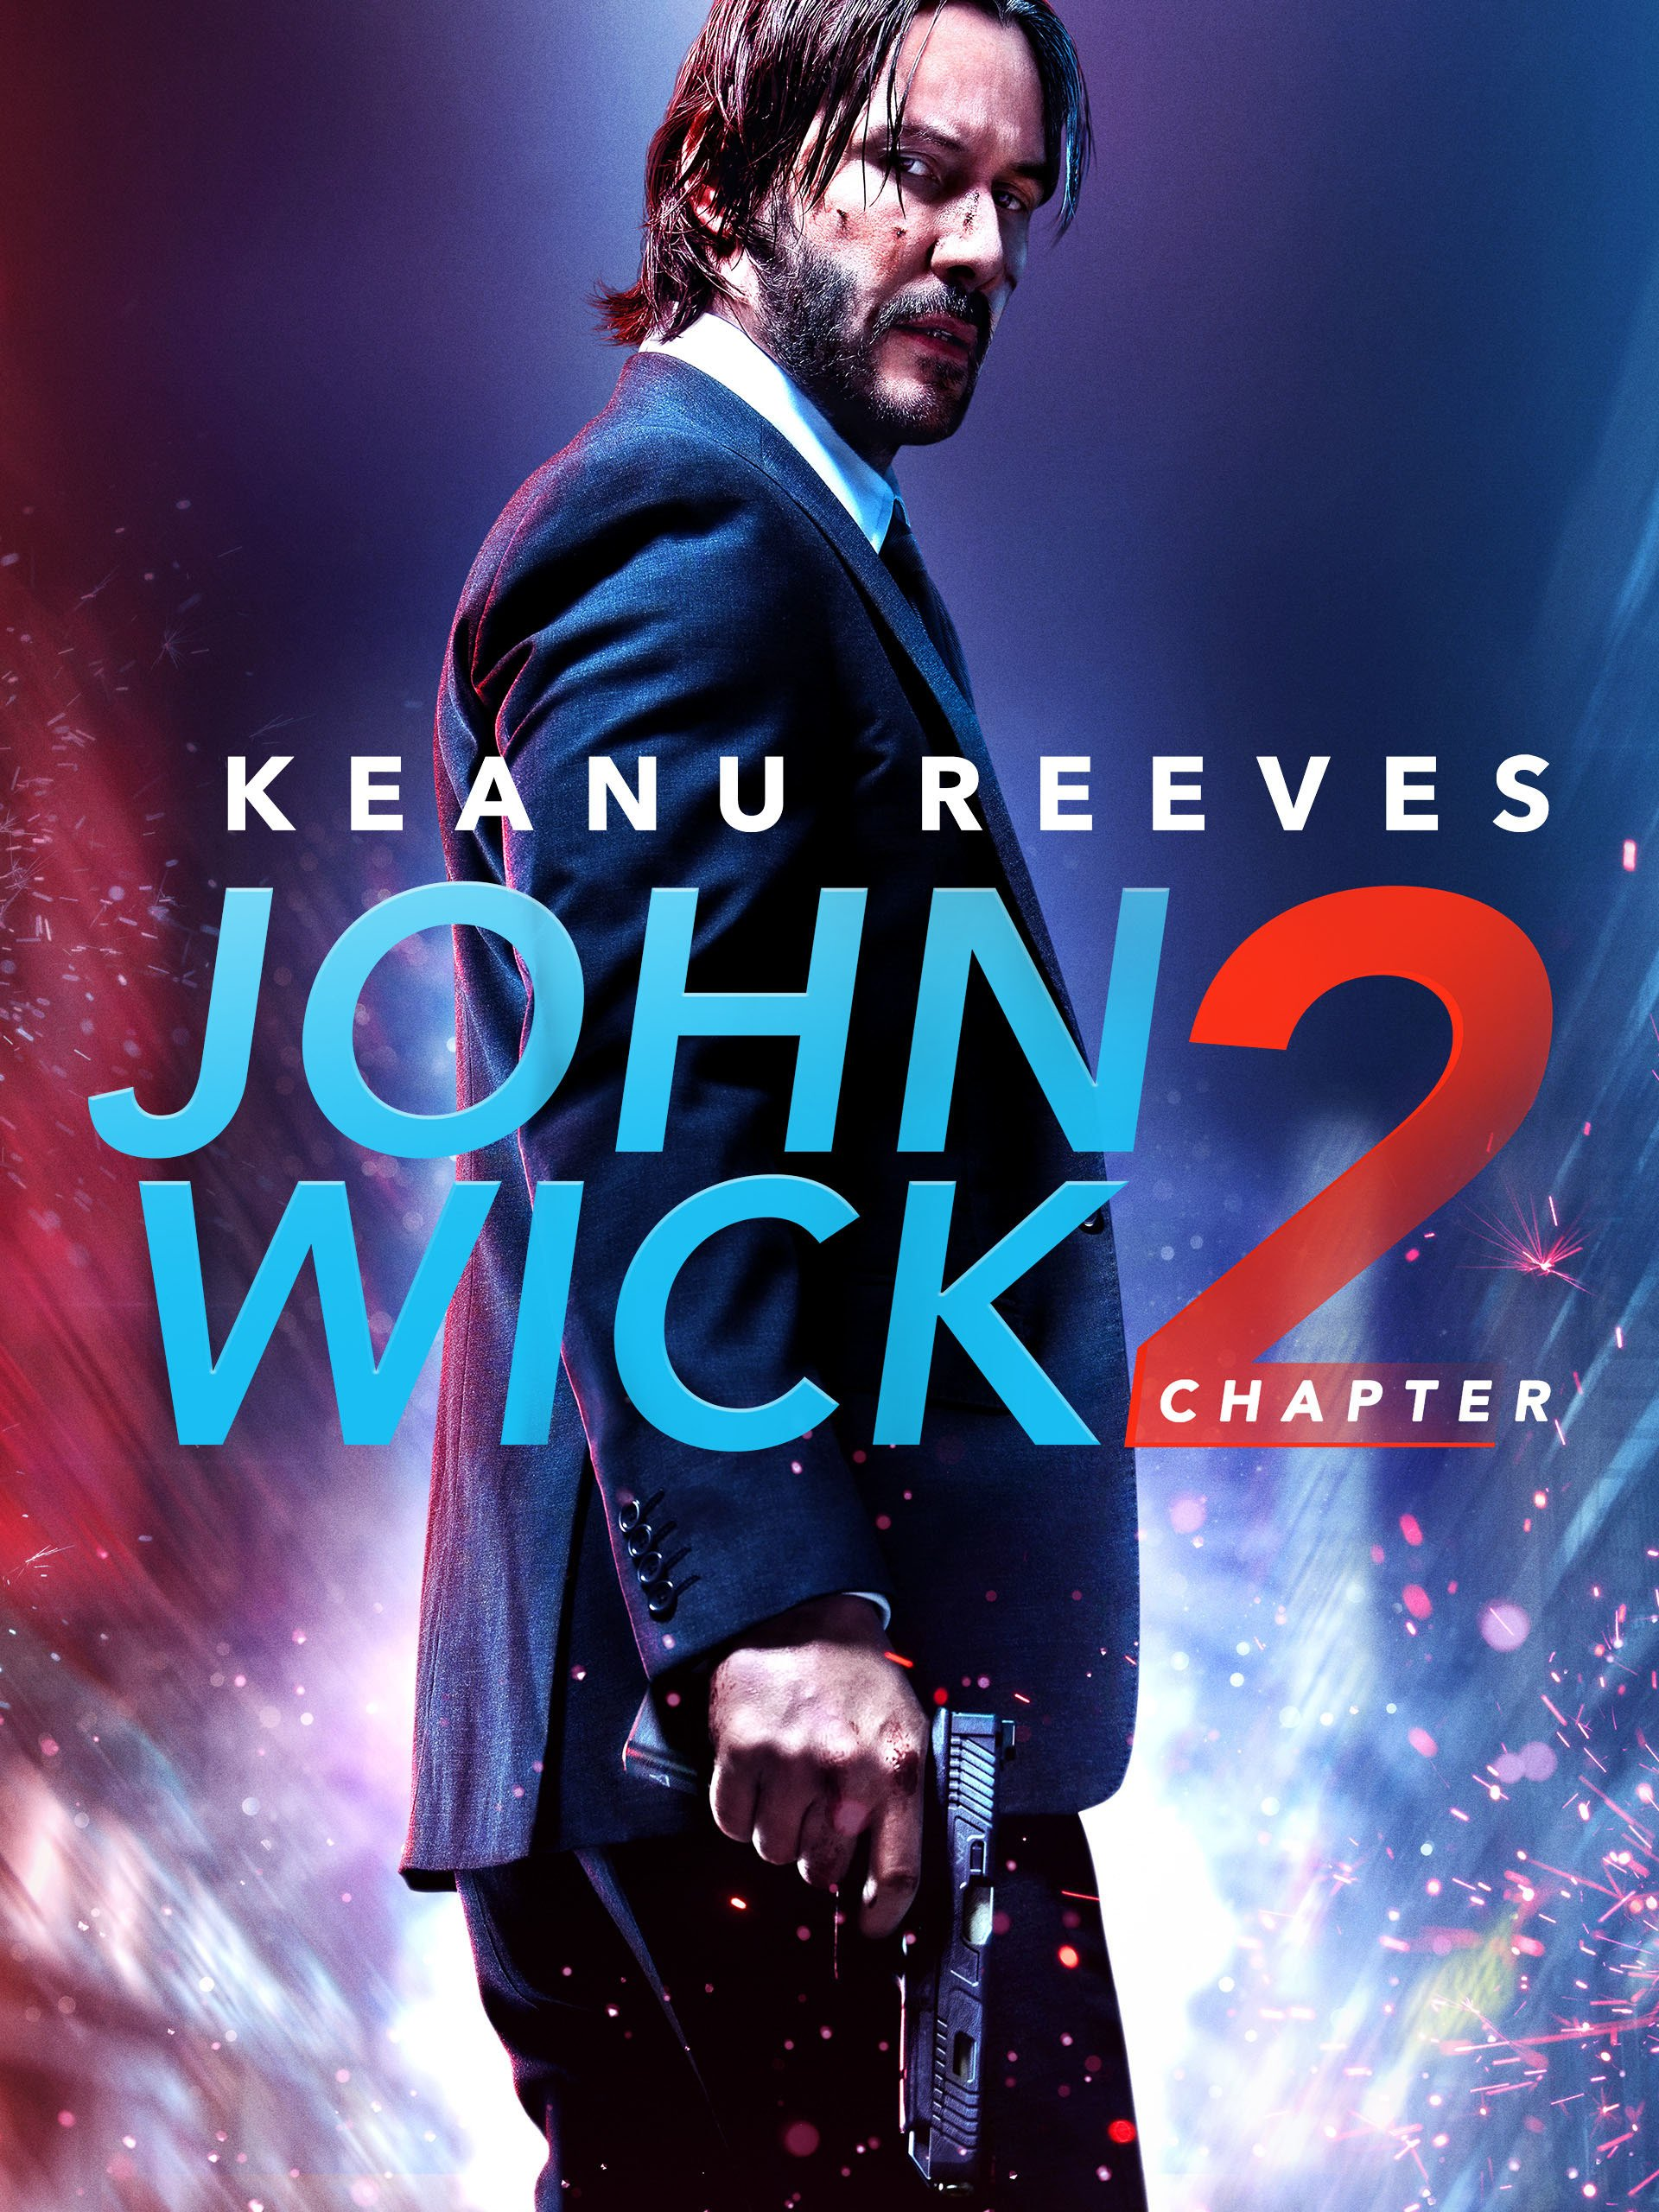 John Wick: Chapter 2 (2017) - Directed by: Chad StahelskiStarring: Keanu Reeves, Riccardo Scamarico, Ian McShane, Ruby Rose, Common, Claudia Gerini, Lance Reddick, Laurence Fishburne, John LeguizamoRated: R for Strong Violence Throughout, Some Language and Brief NudityRunning Time: 2 h 2 mTMM Score: 4.5 stars out of 5STRENGTHS: Action, Pacing, Story, WorldbuildingWEAKNESSES: Some Acting, John Wick is Invincible (?)